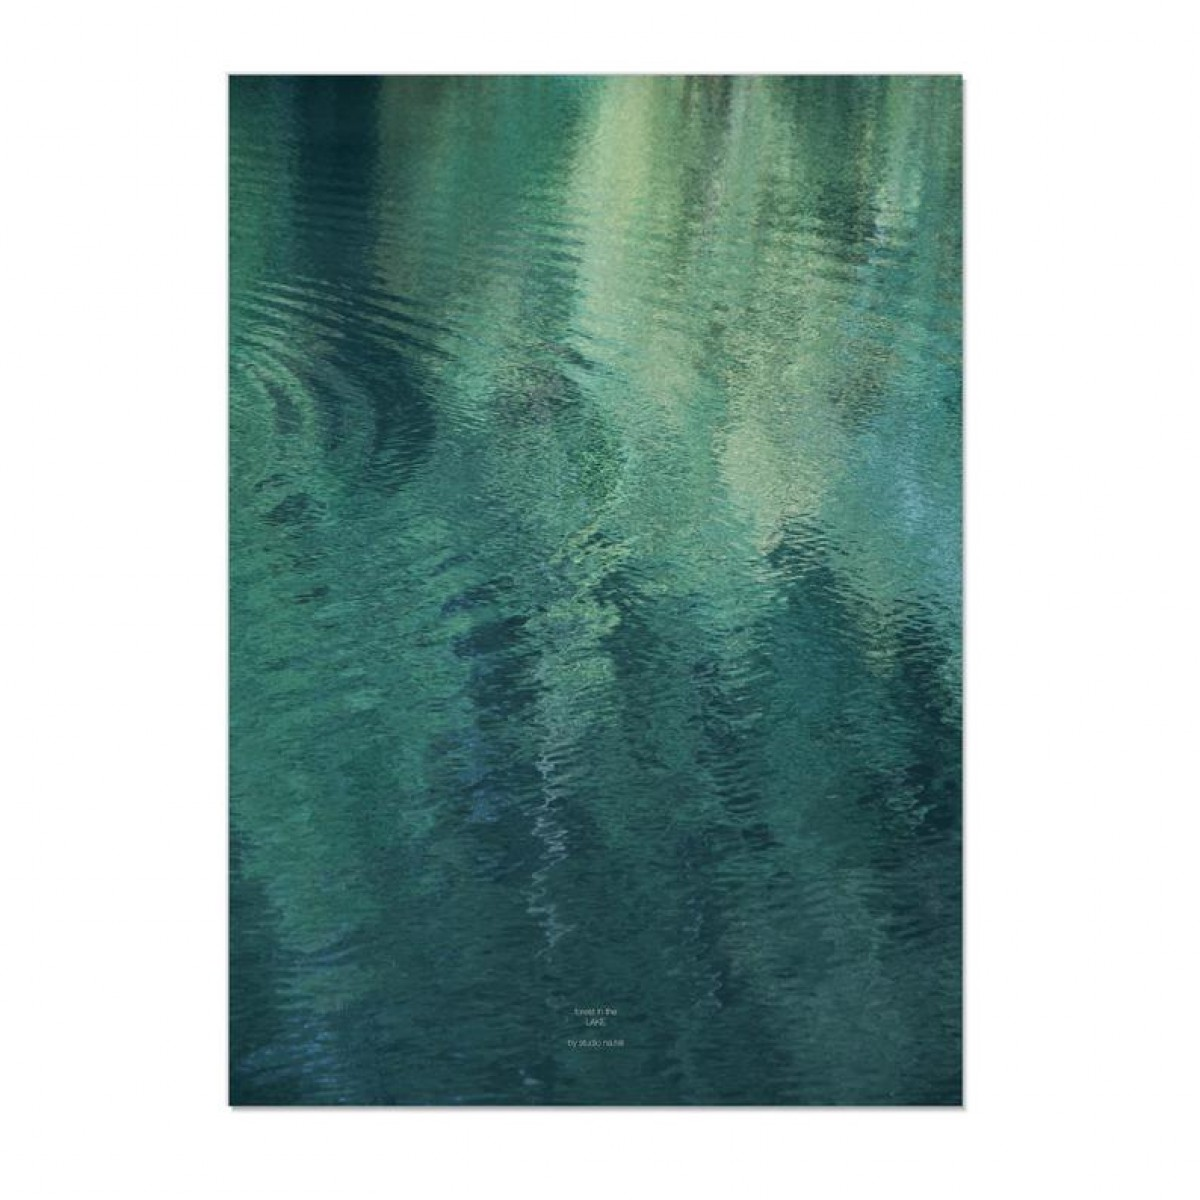 nahili forest in the LAKE - A3, 50x70 / A1 Artprint - Poster